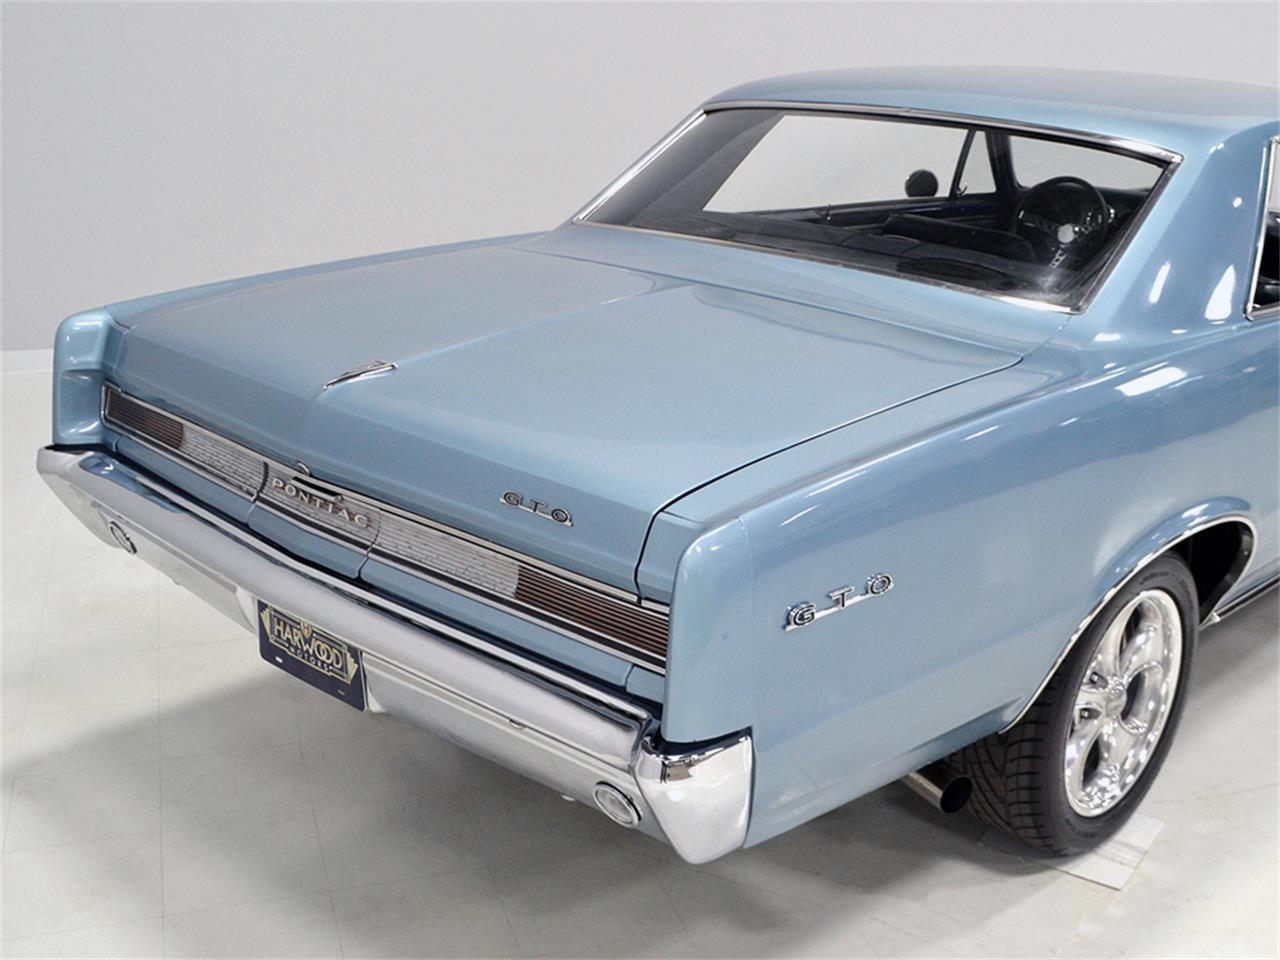 Large Picture of '64 GTO located in Ohio - $32,900.00 - MGNK